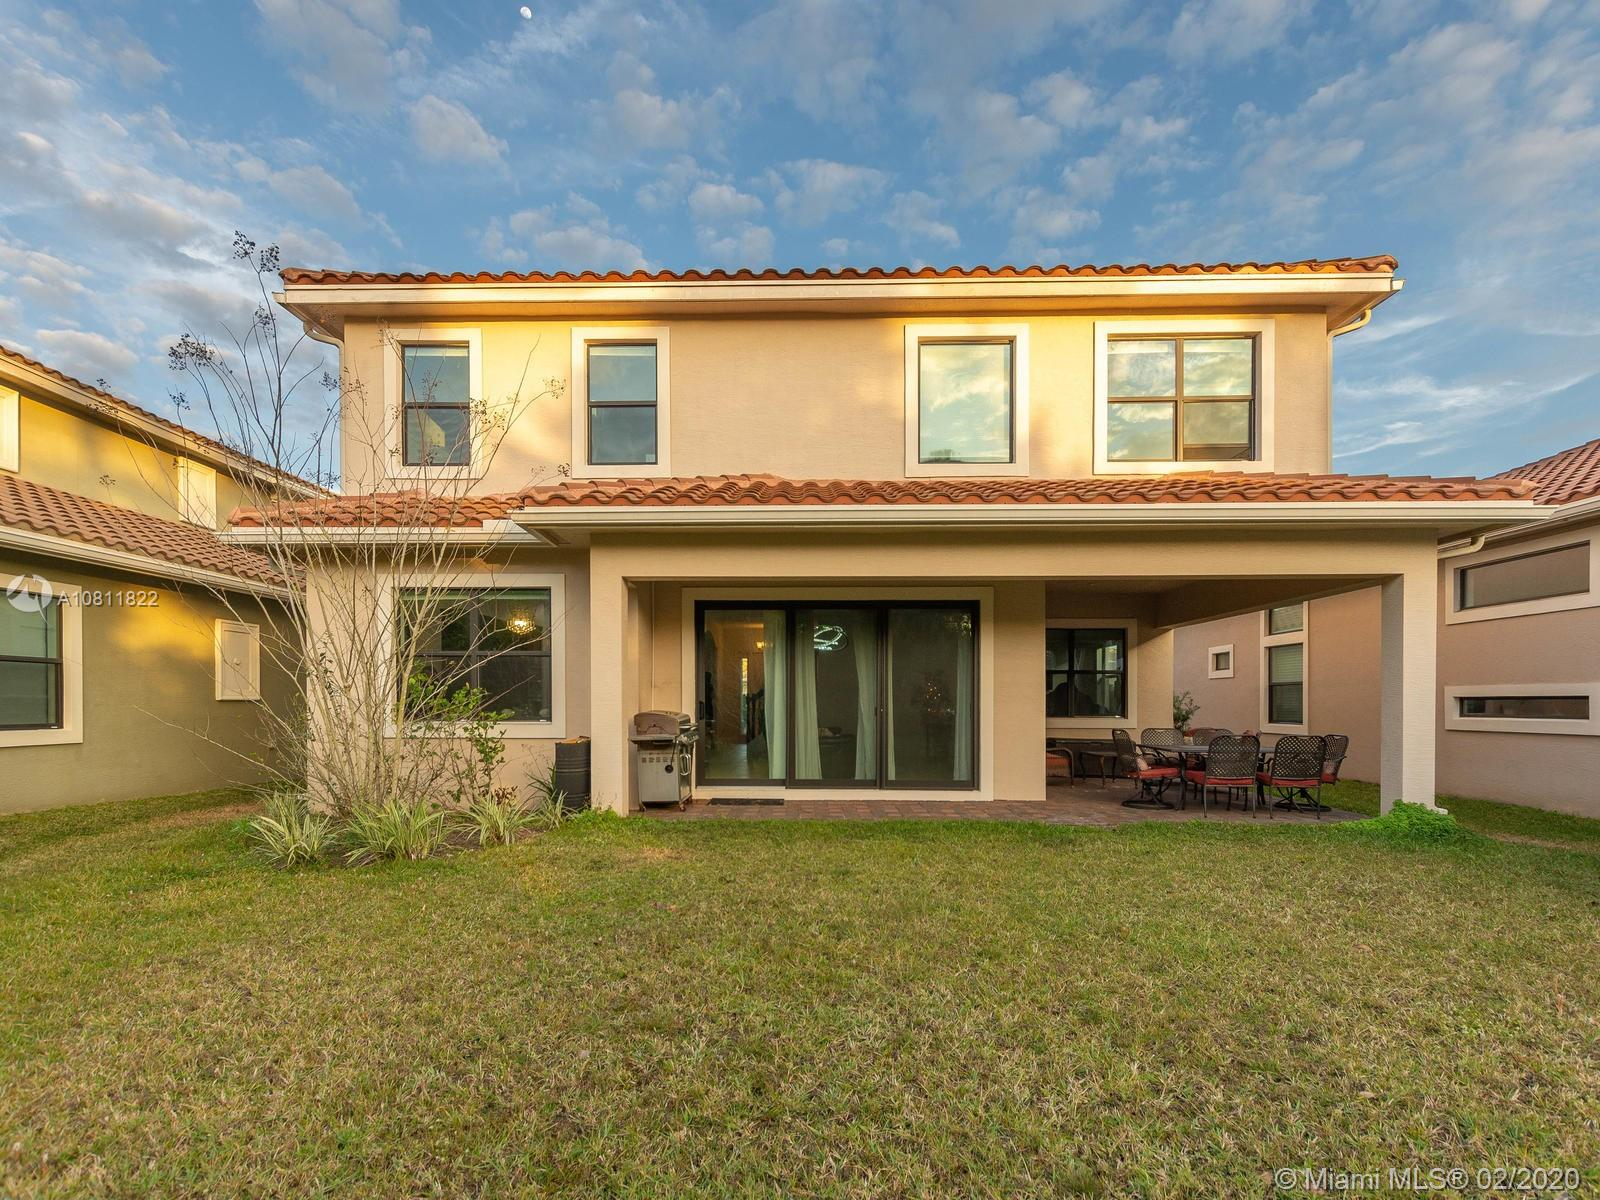 Listing A10811822 - Large Photo # 59